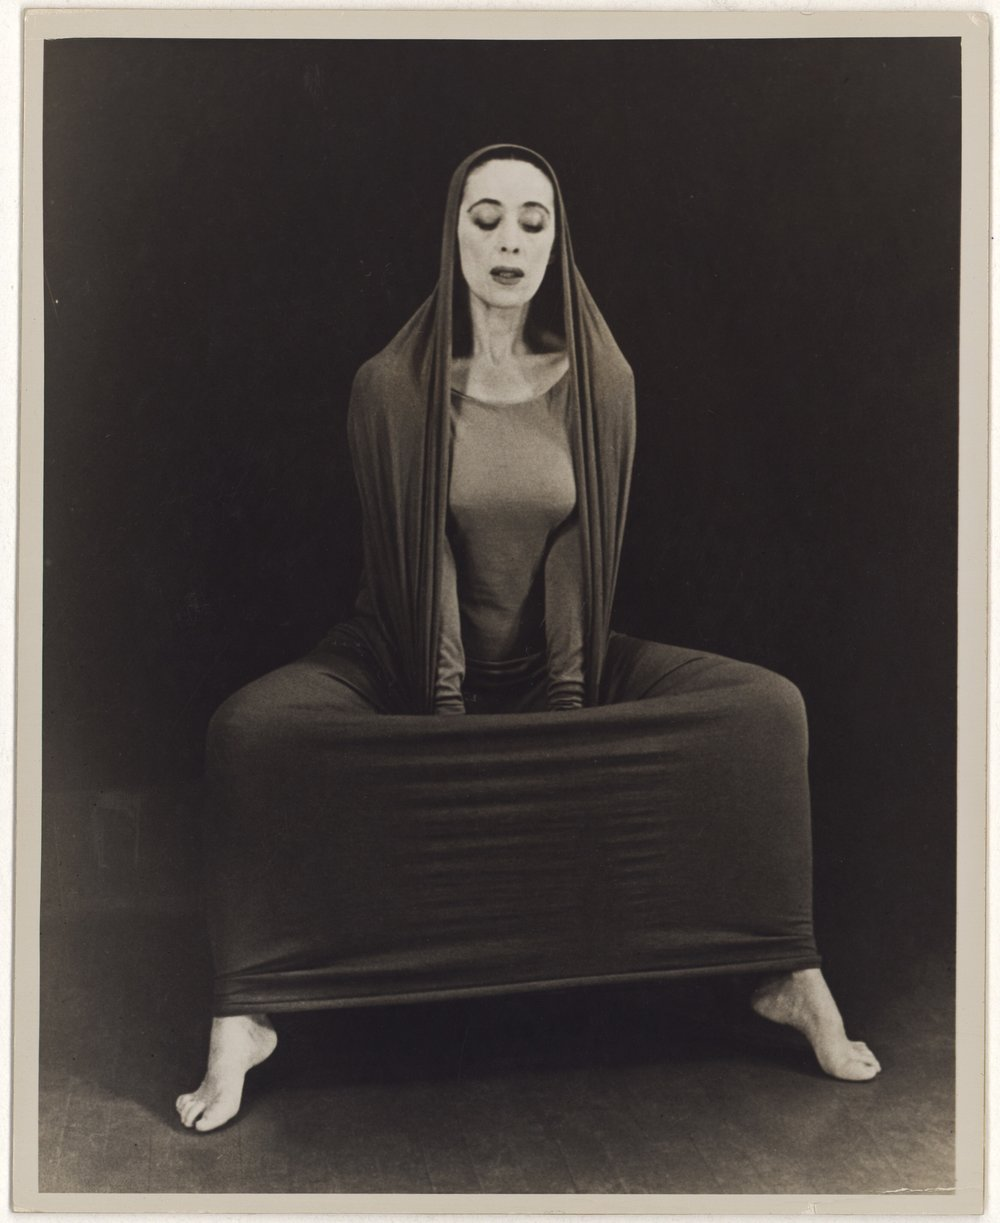 Martha Graham, Lamentation, 1930